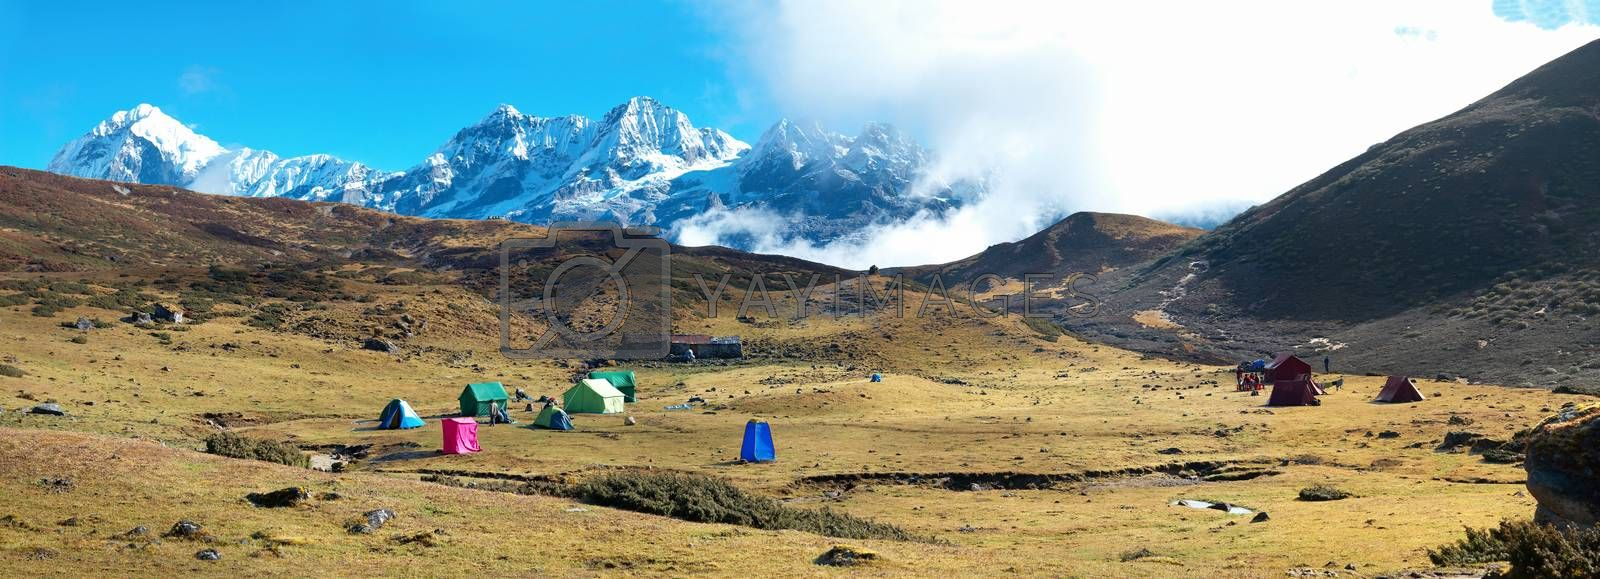 Campsite with tents on the top of high mountains by vapi